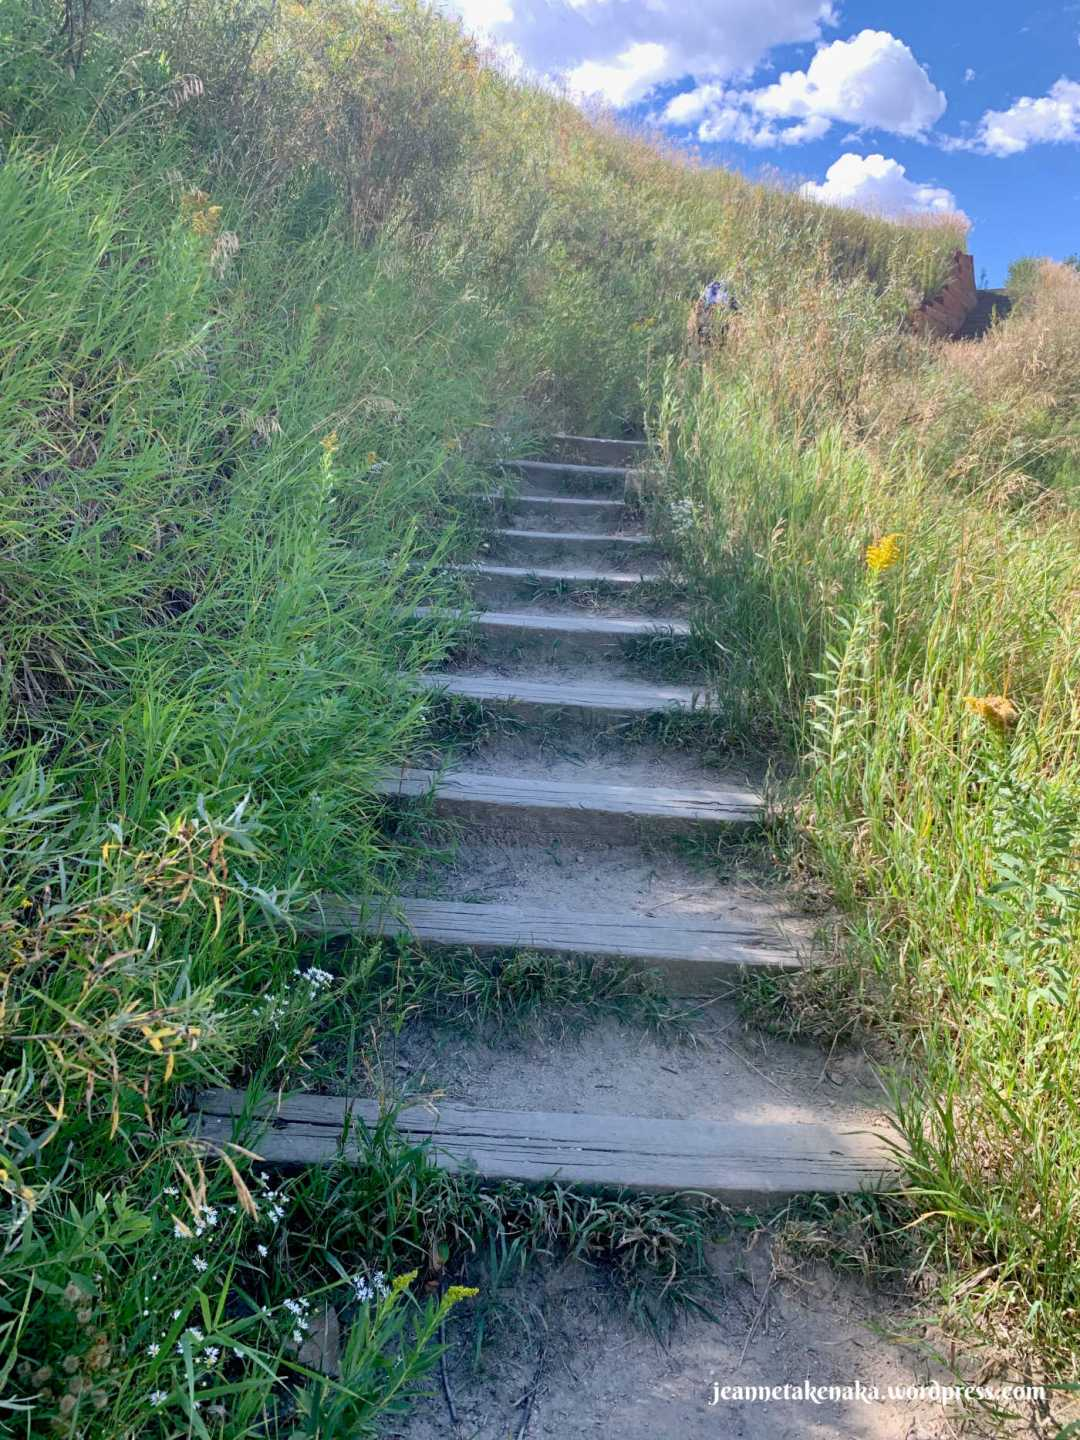 Wooden stairs leading up a grassy hill